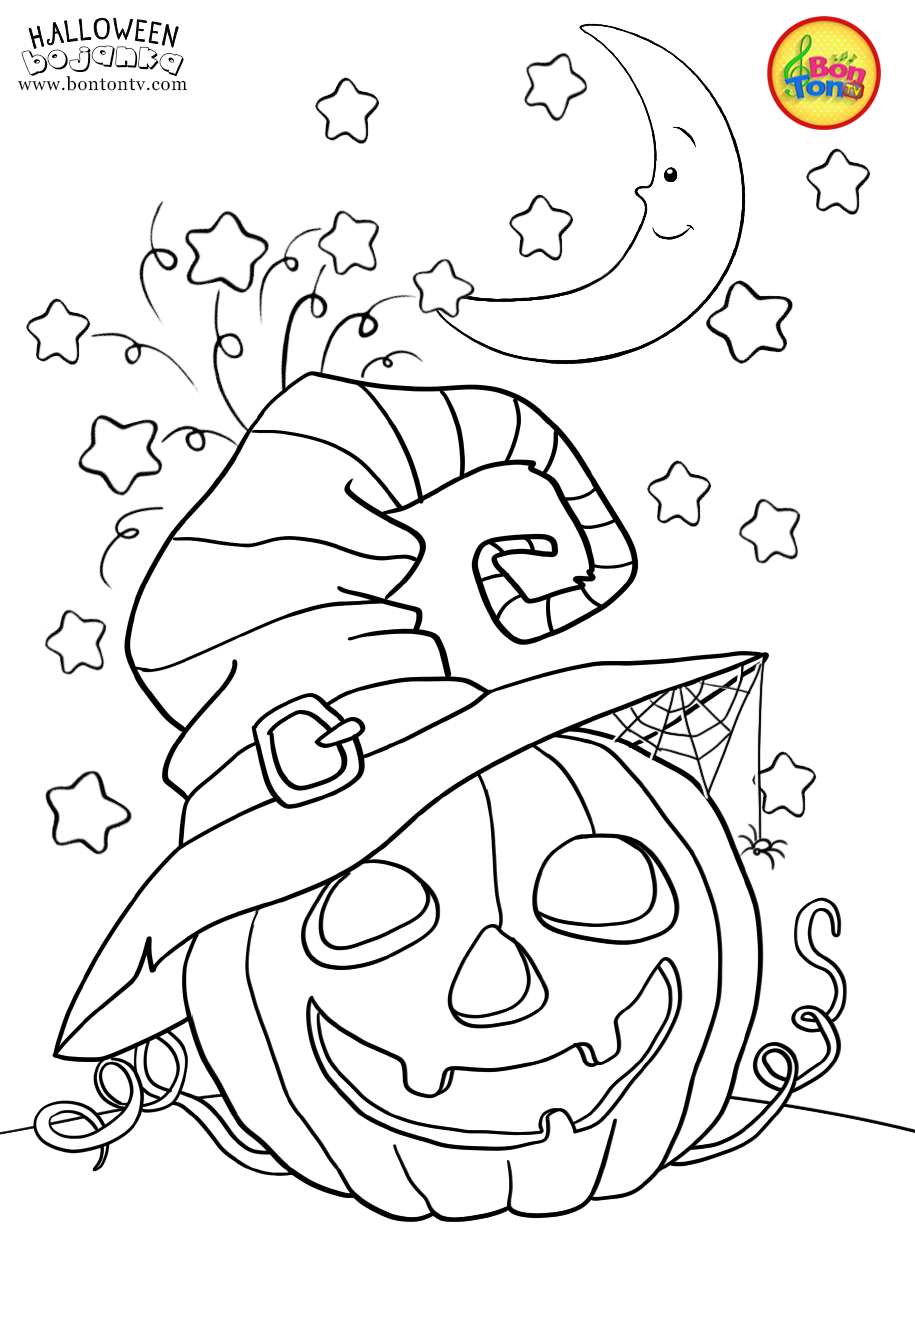 Coloring Page Halloween Coloring Sheets Pumpkin Coloring Pages Halloween Coloring